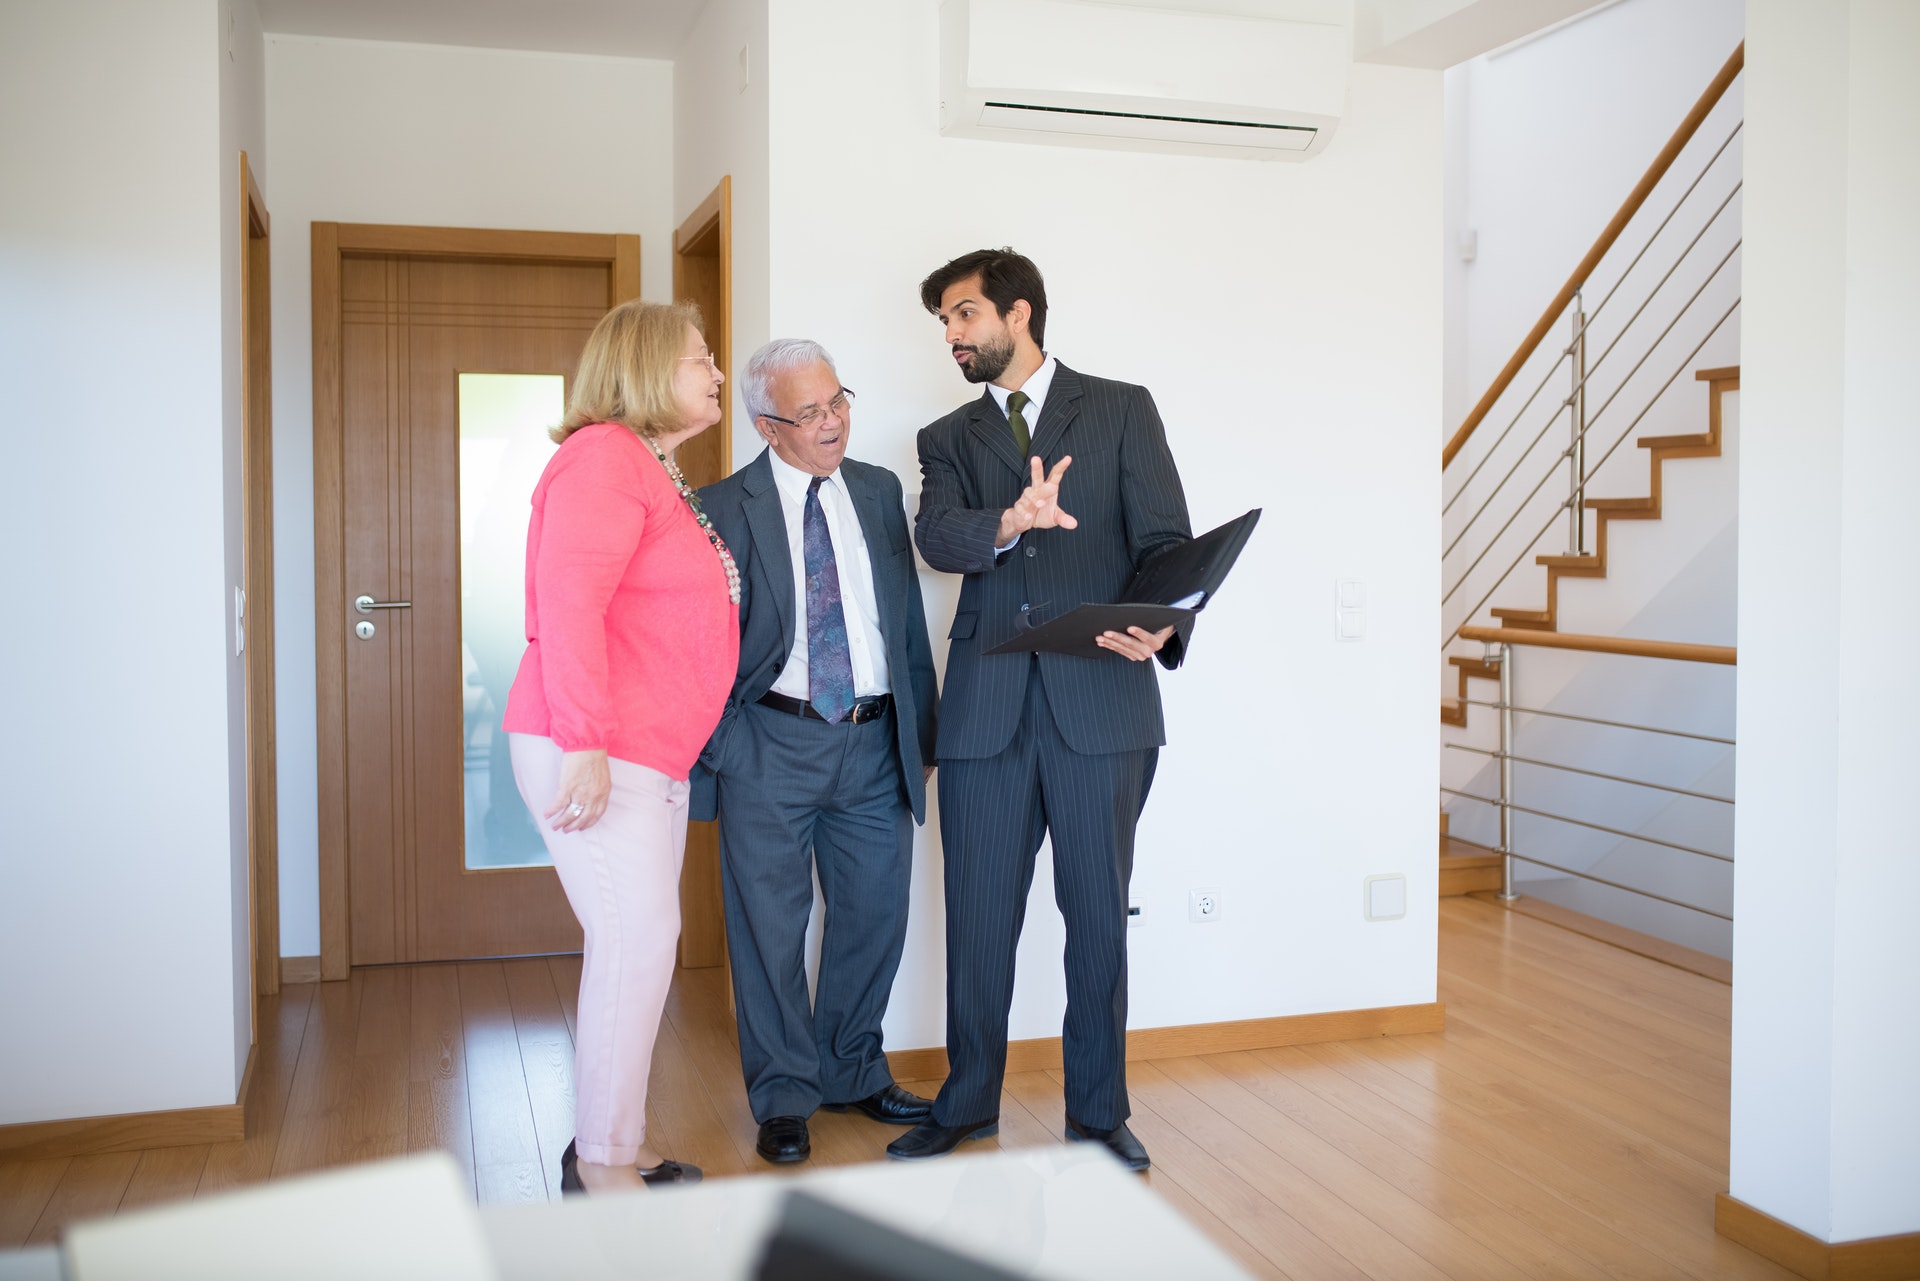 Reverse mortgages spike as older homebuyers upsize